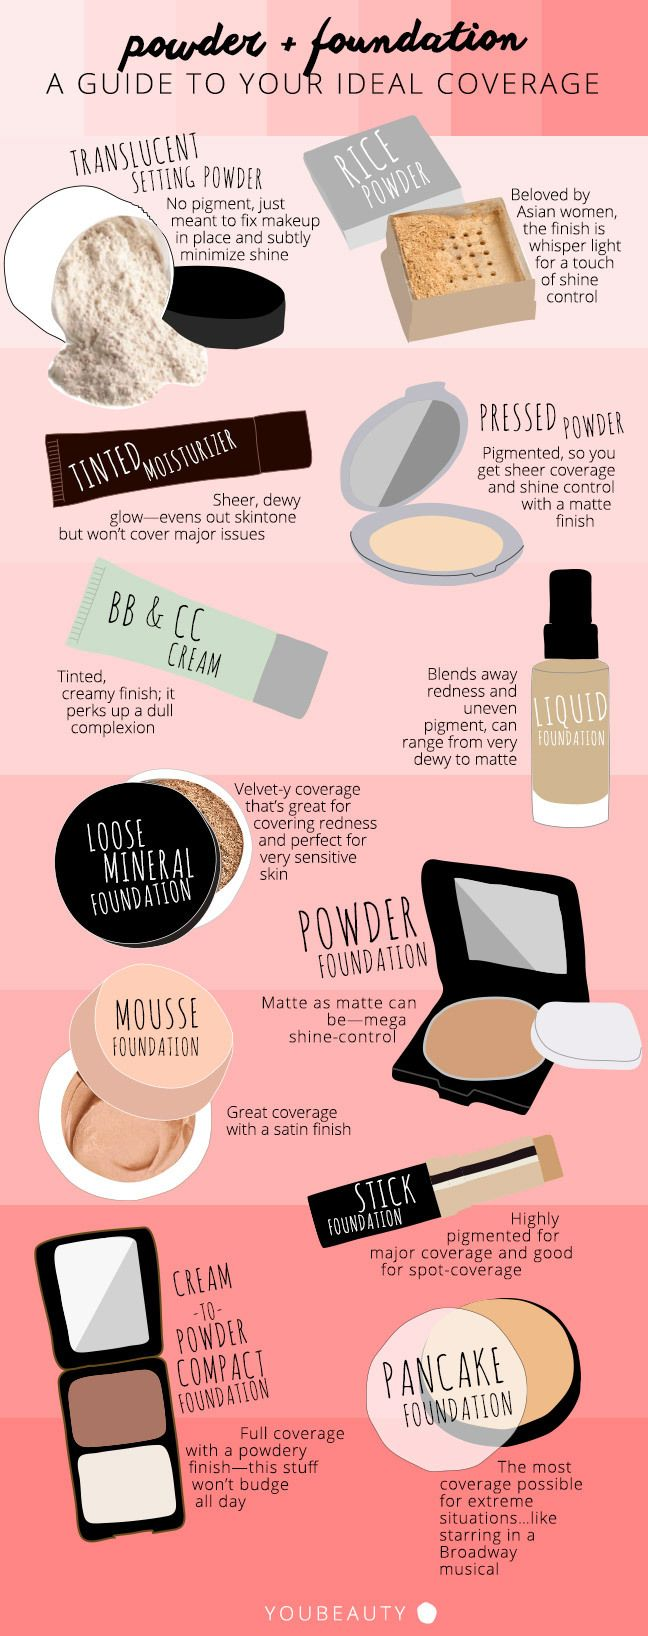 This powder and foundation cheat sheet will help you find the right coverage for you.